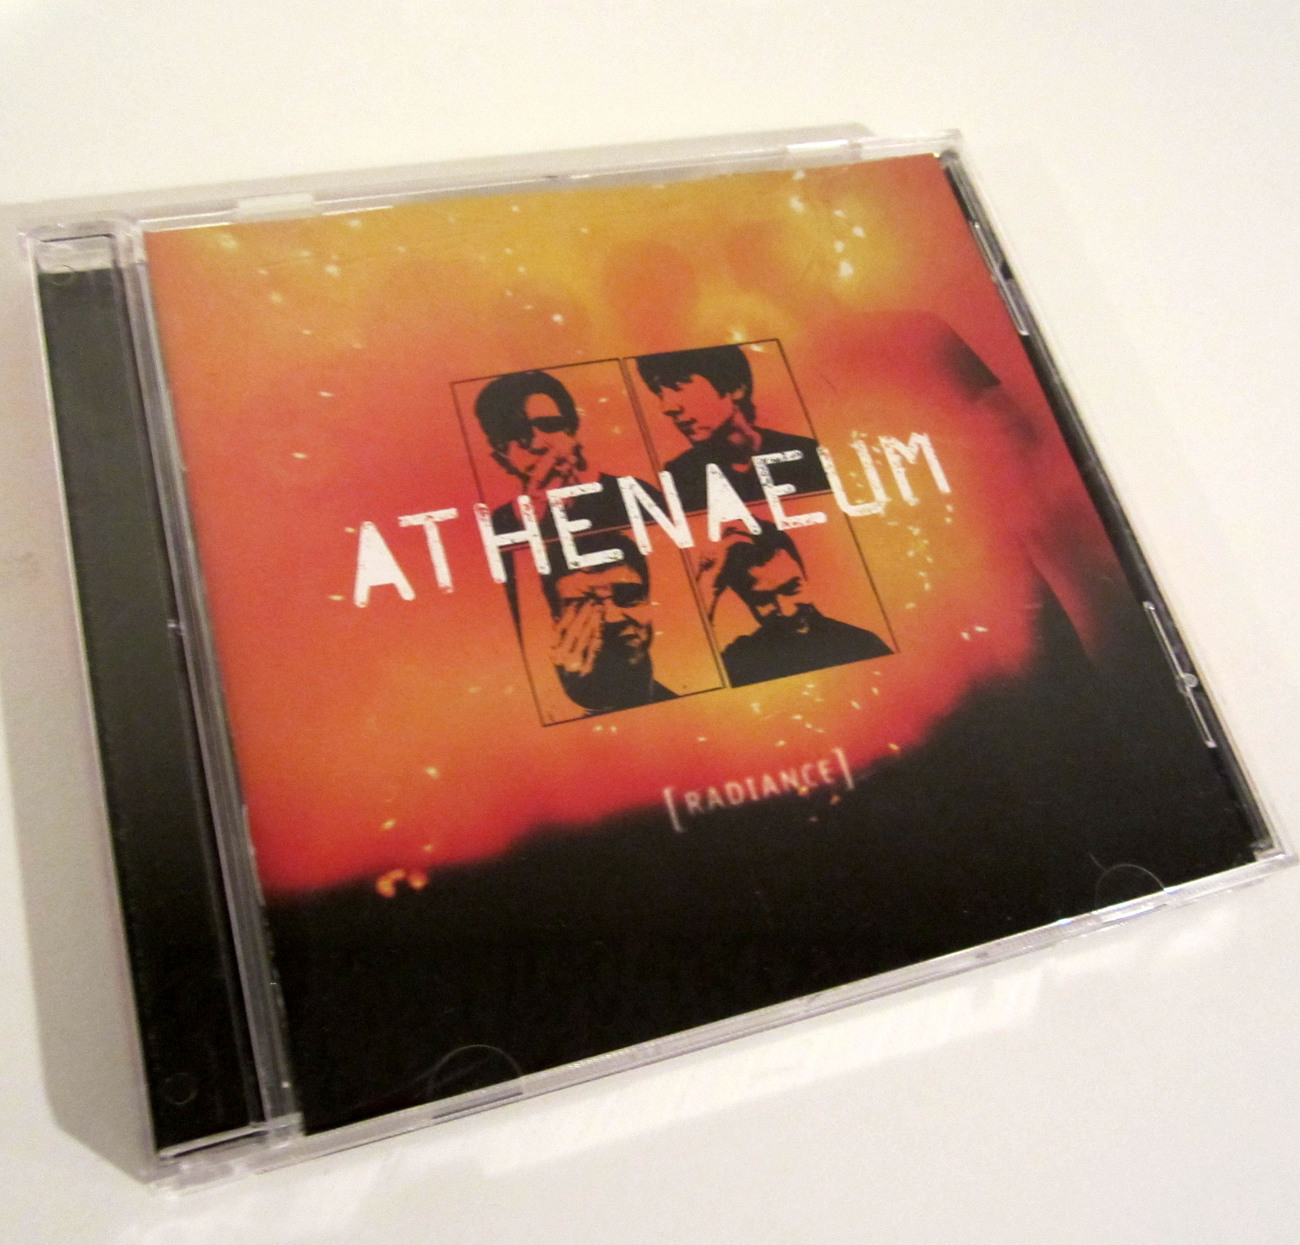 CD Radiance by Athenaeum (c) 1998